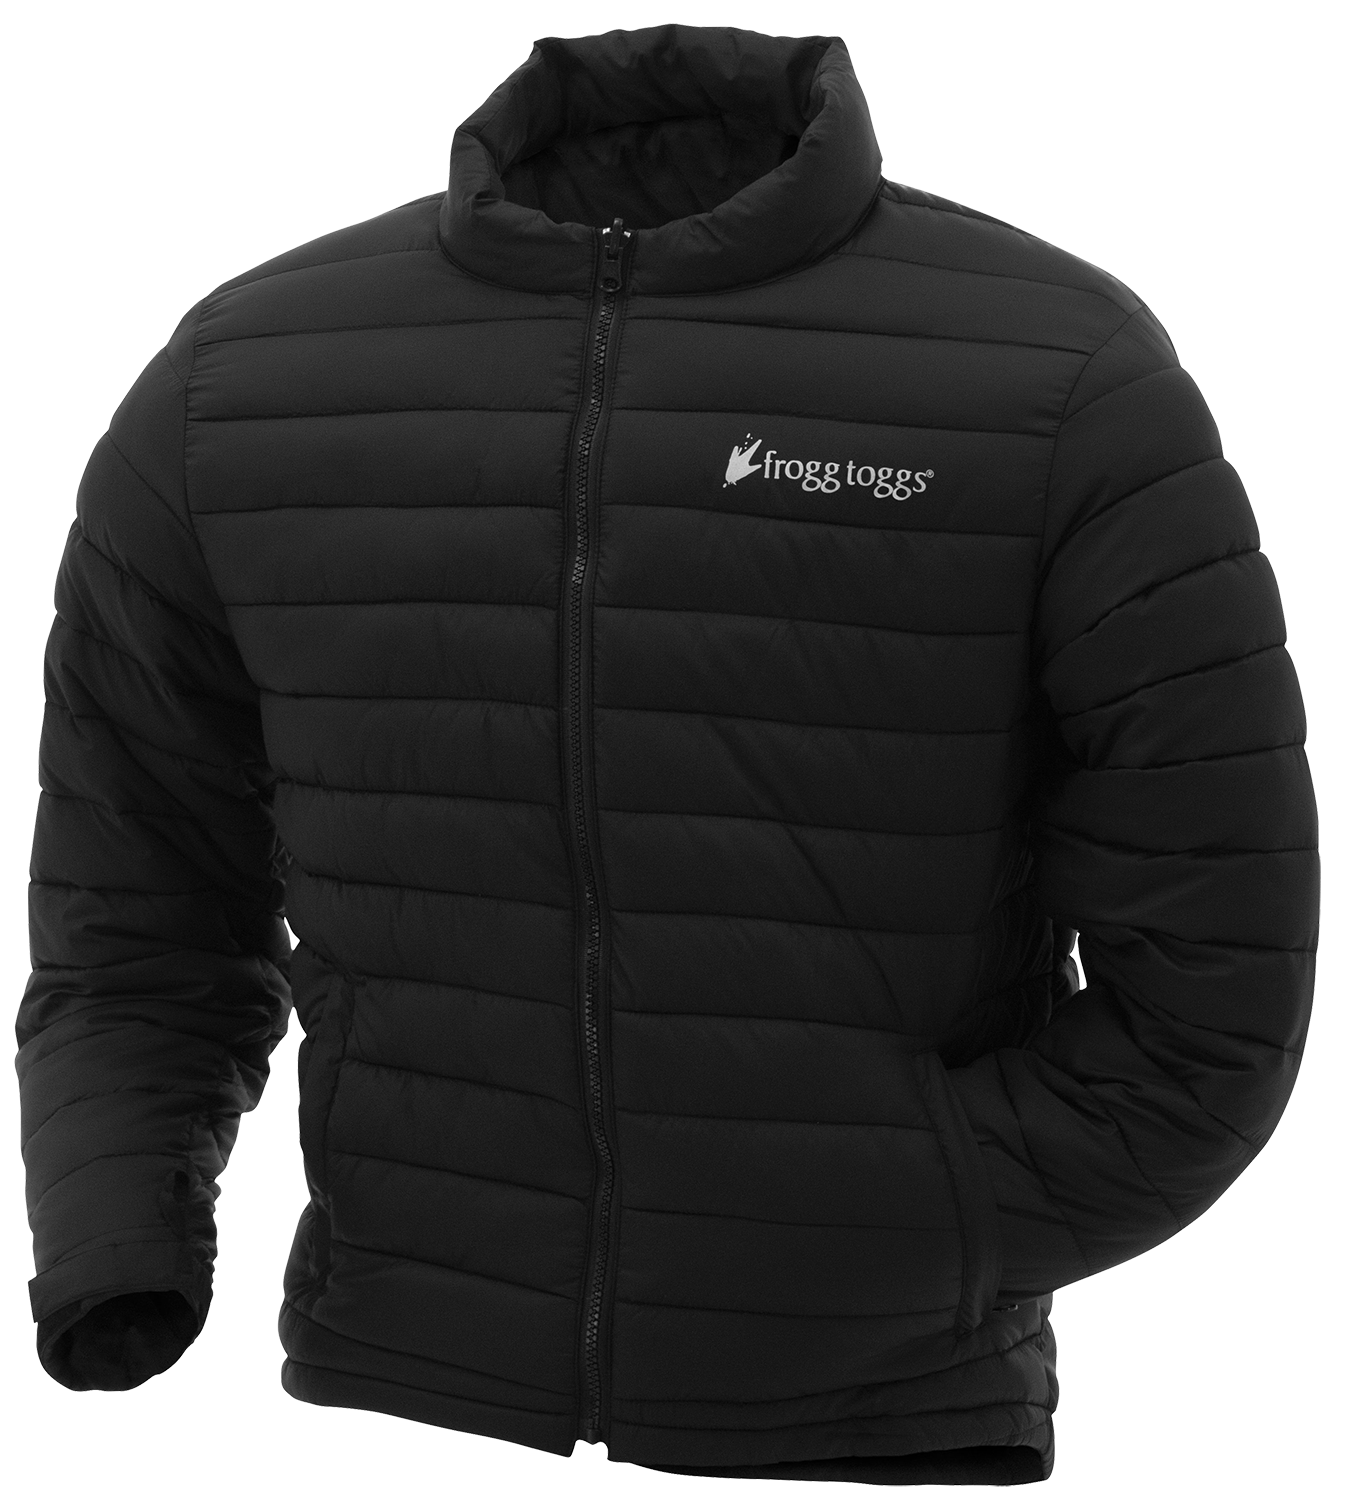 frogg toggs® Co-Pilot Insulated Jacket - Black